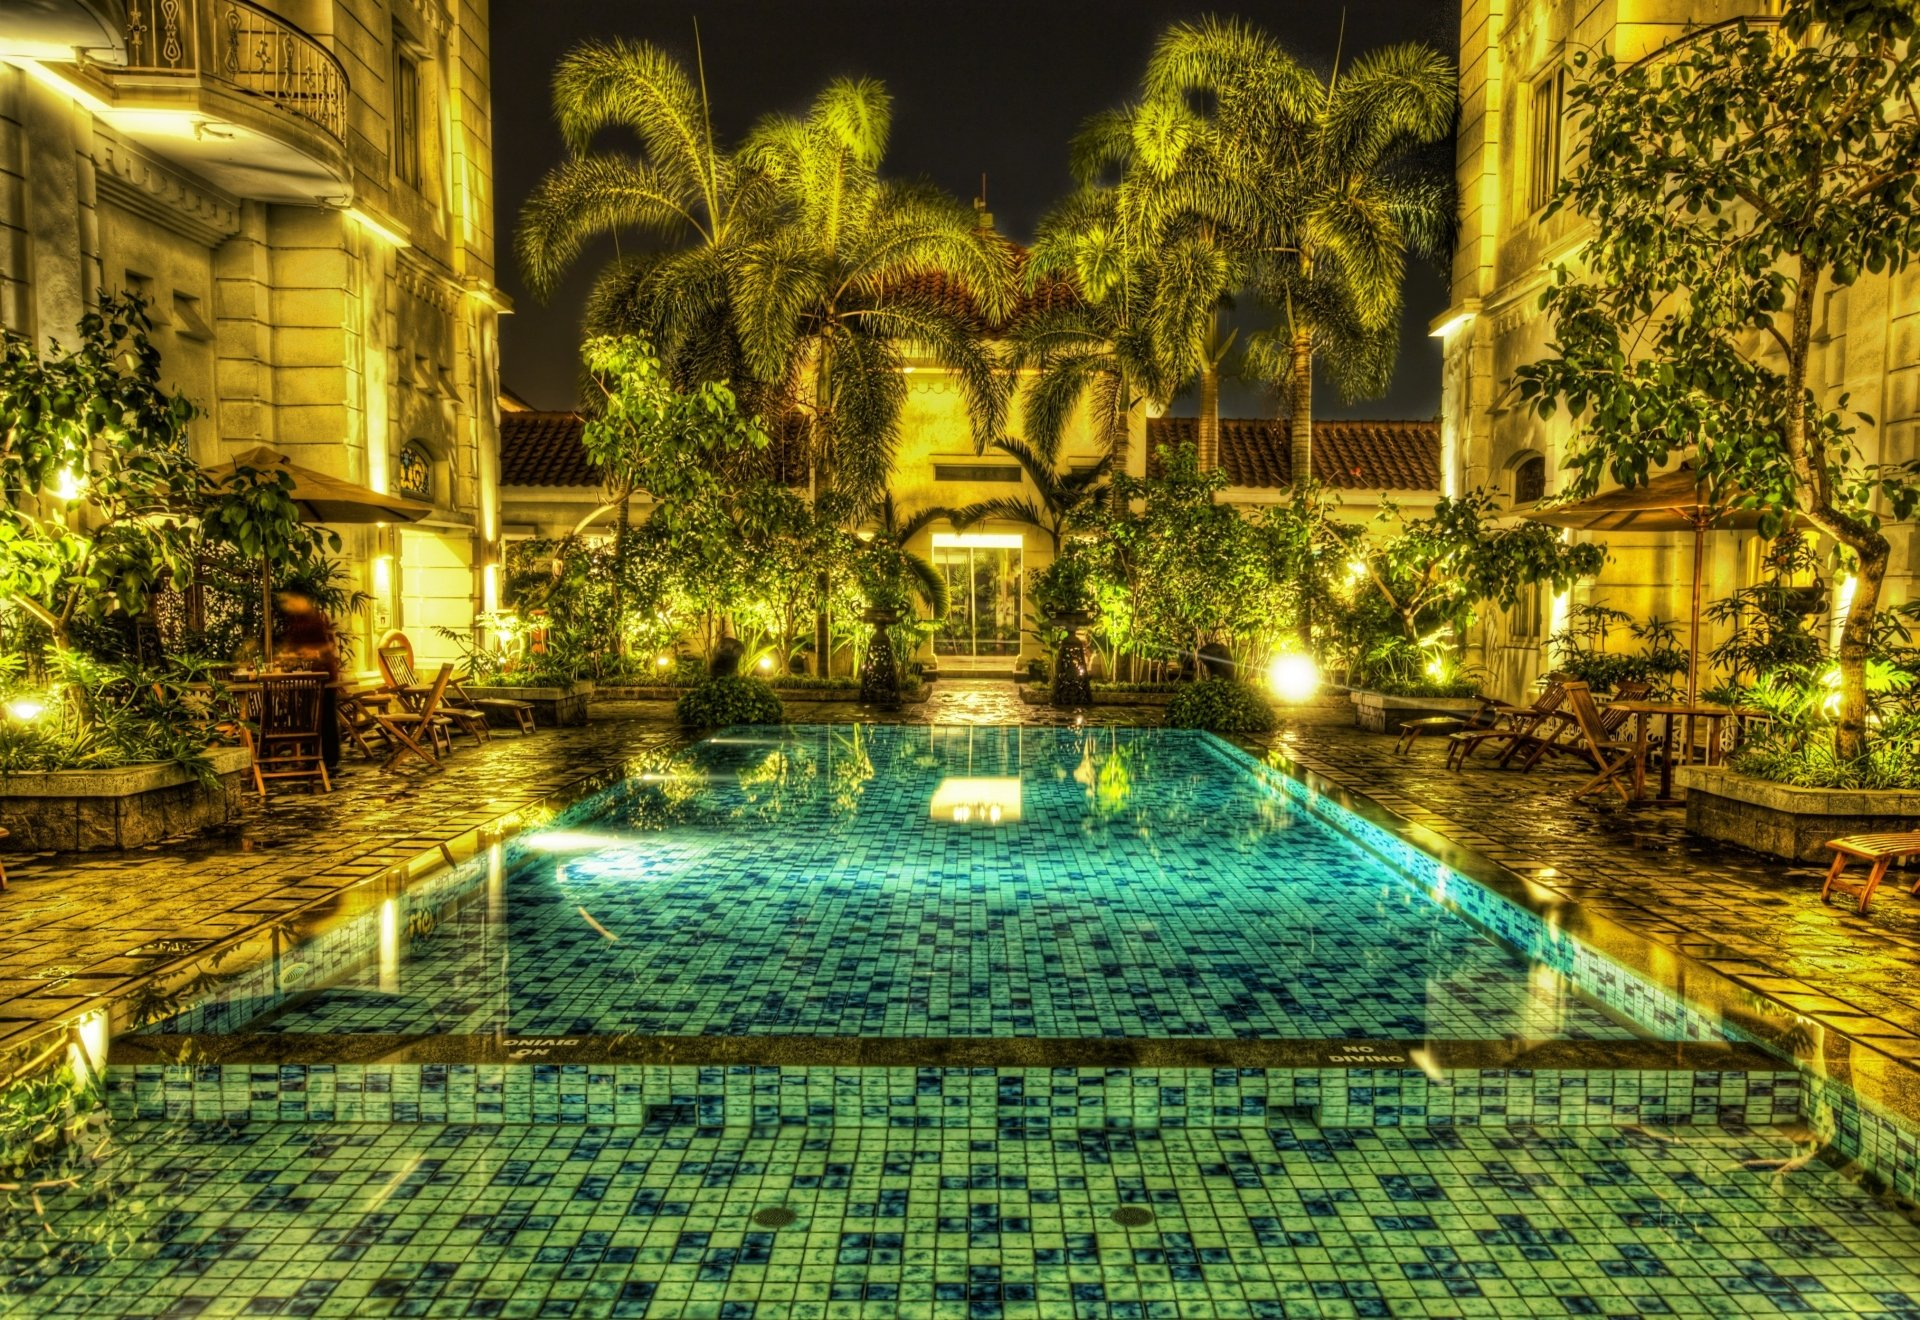 Photography - HDR  Pool Jakarta Indonesia Palm Tree Mosaic Wallpaper